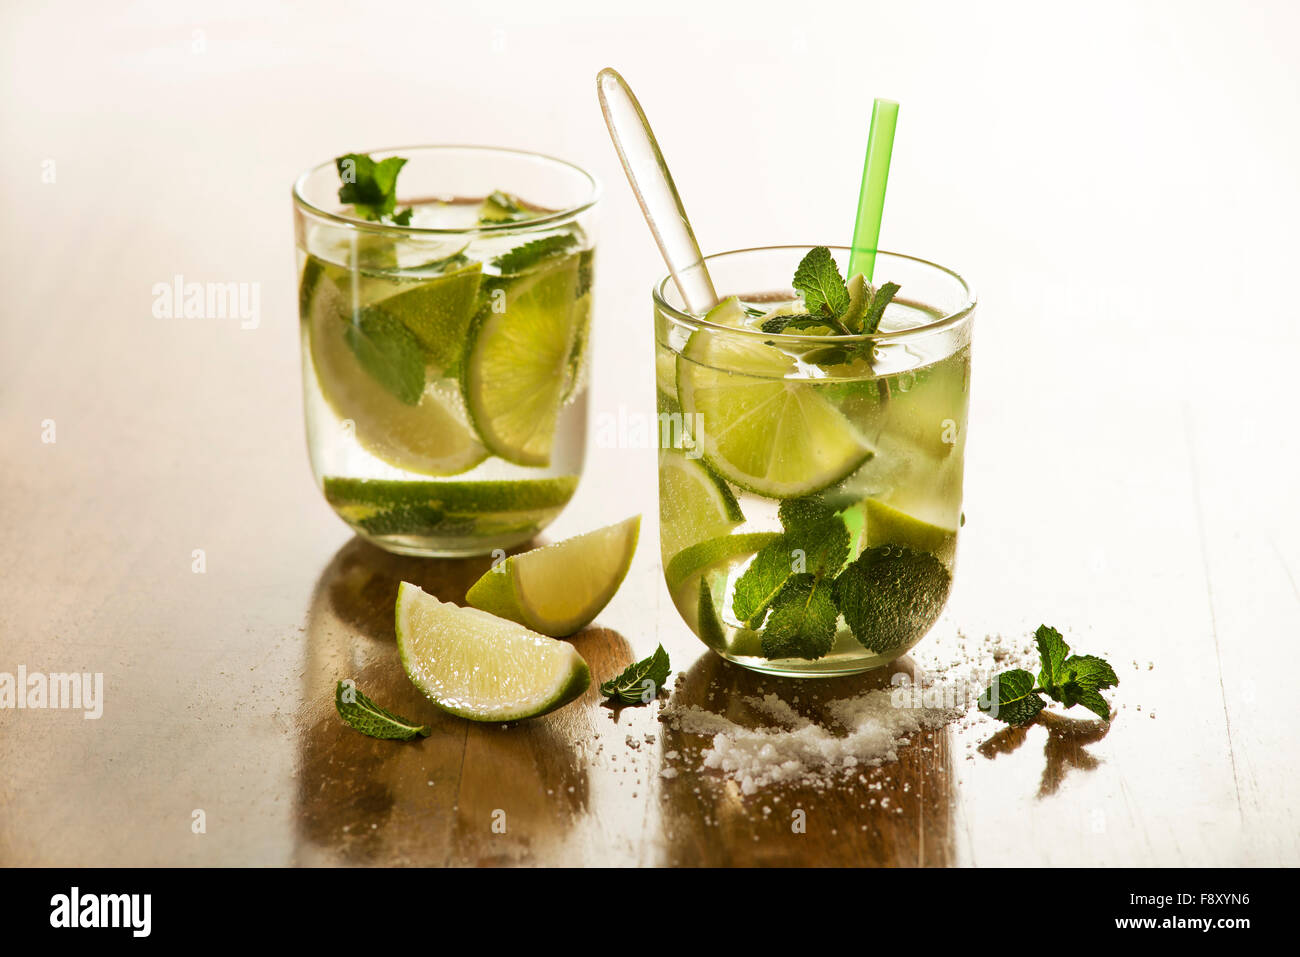 Cold Mojito cocktail on a rustic table close up. - Stock Image